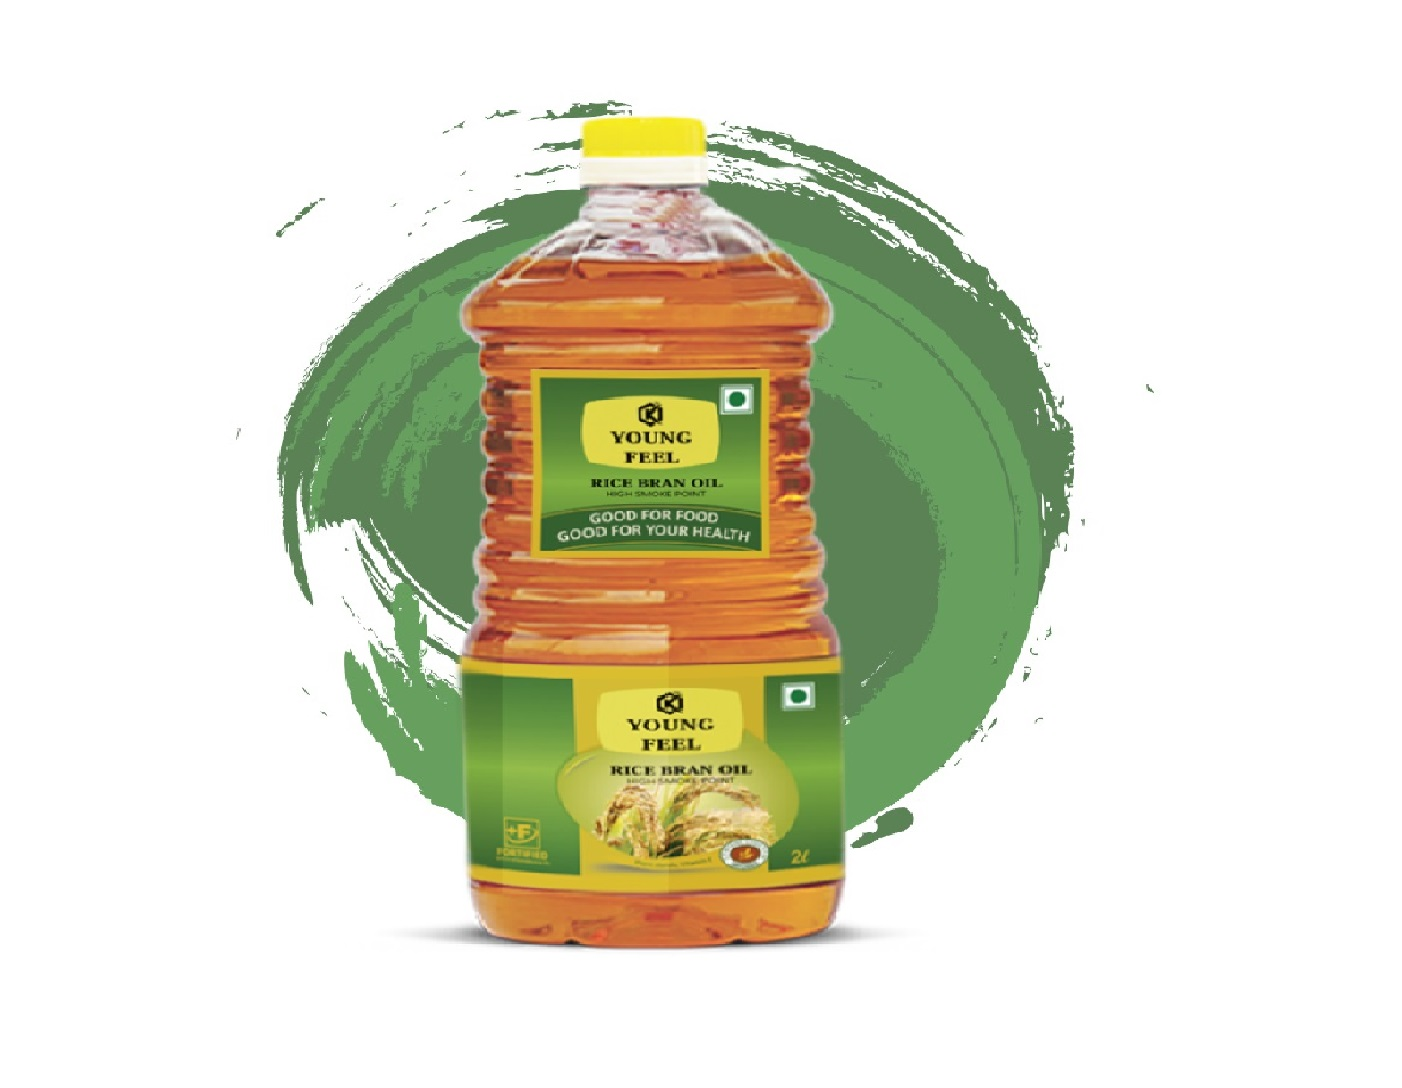 YOUNG FEEL 2L (RICE BRAN OIL)